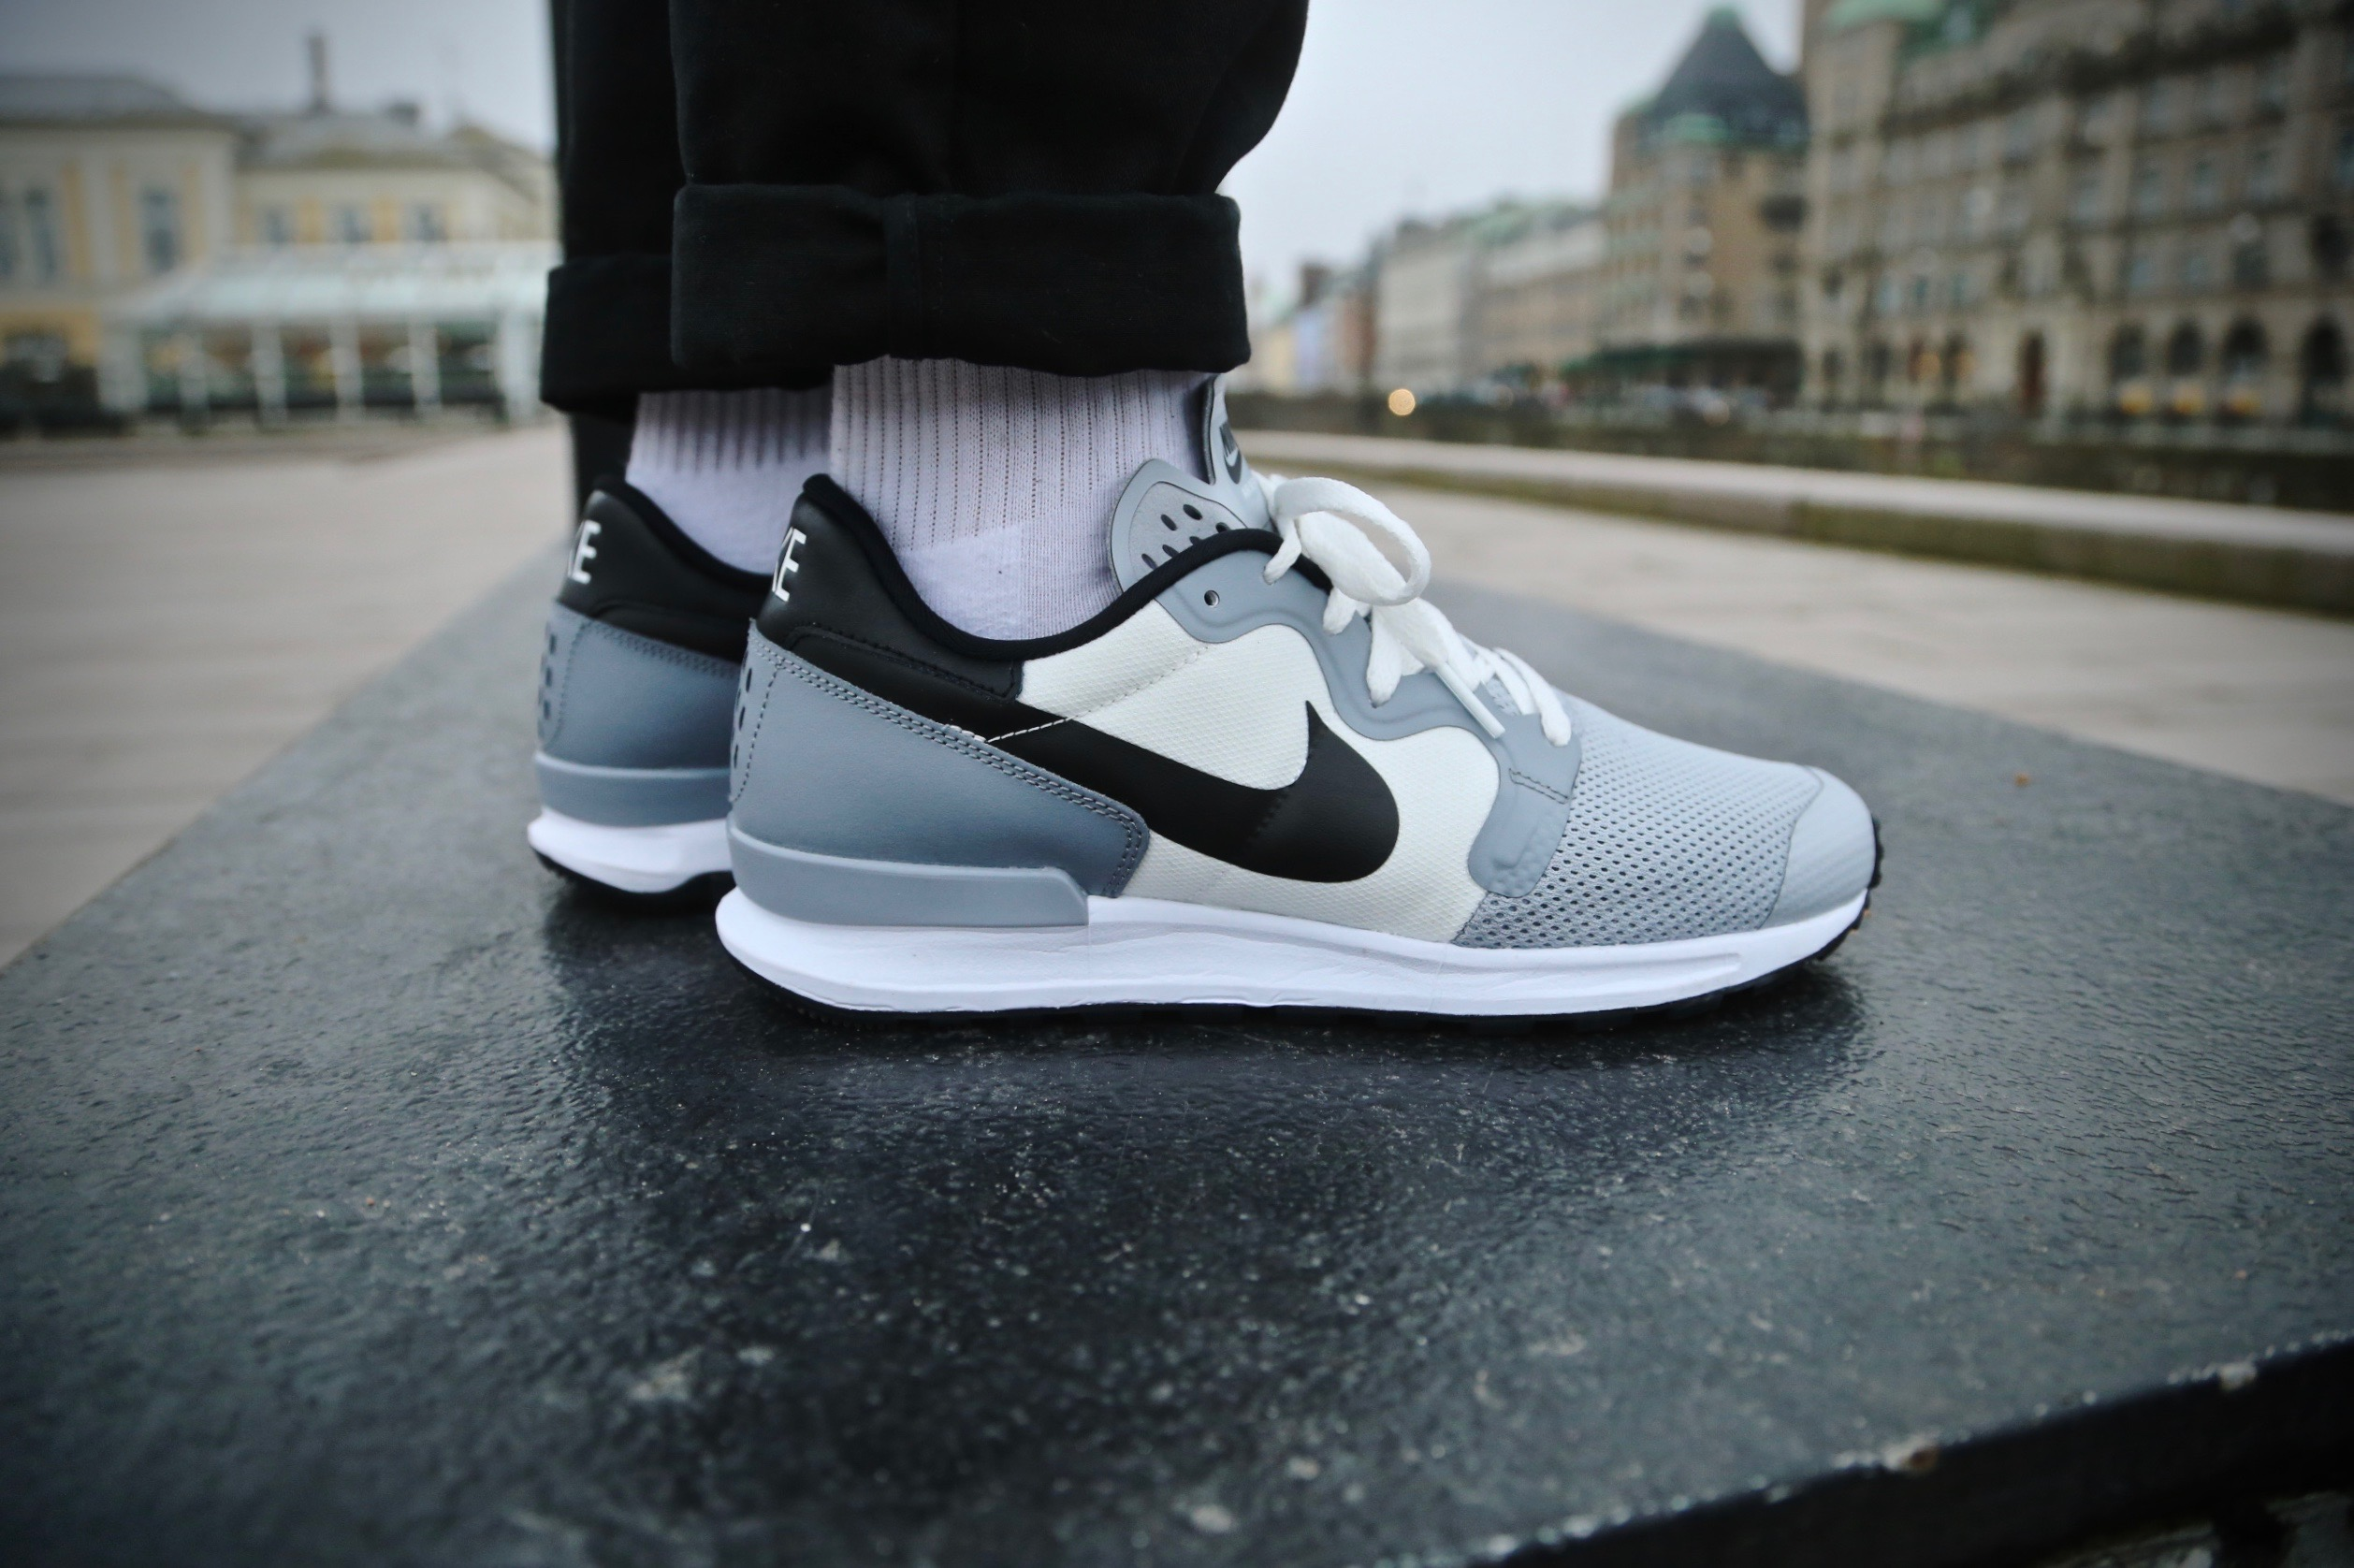 Nike Air Berwuda Wolf Grey Black